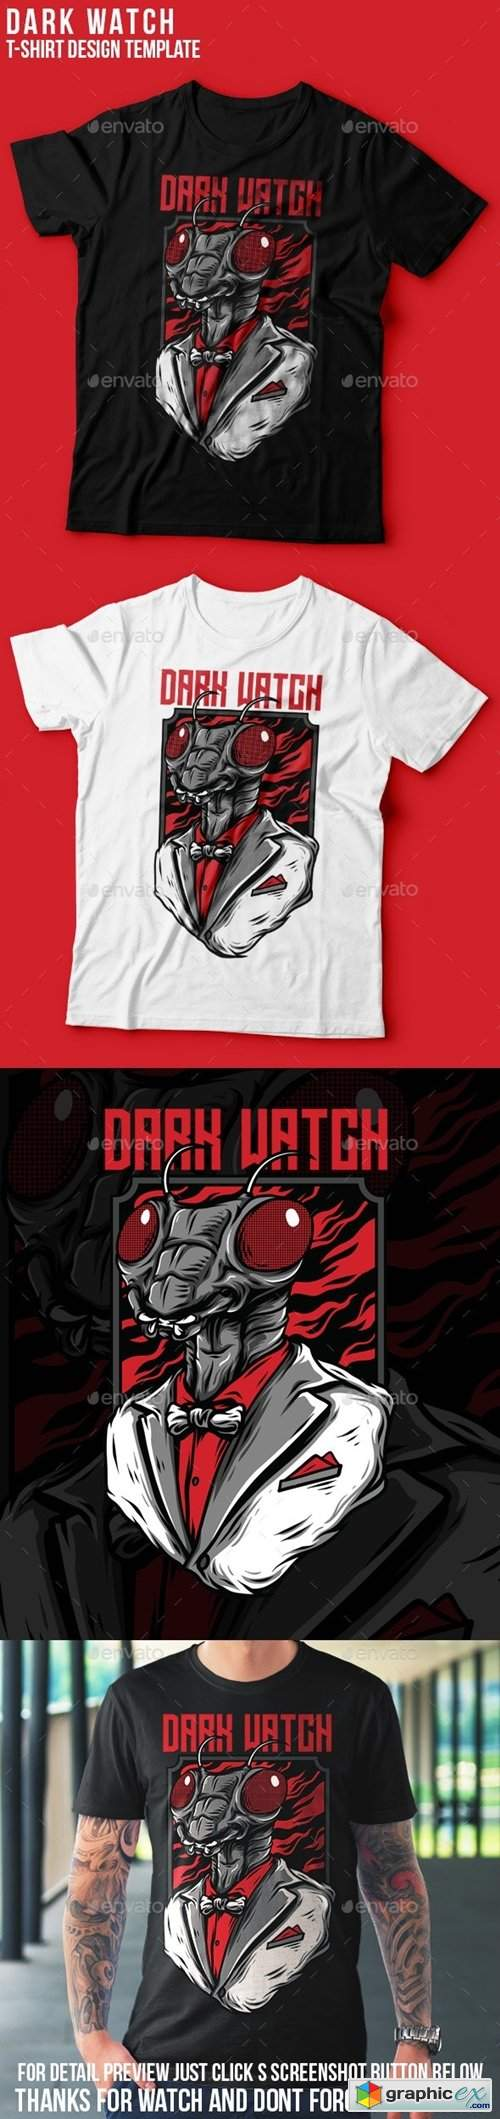 Dark Watch T-Shirt Design